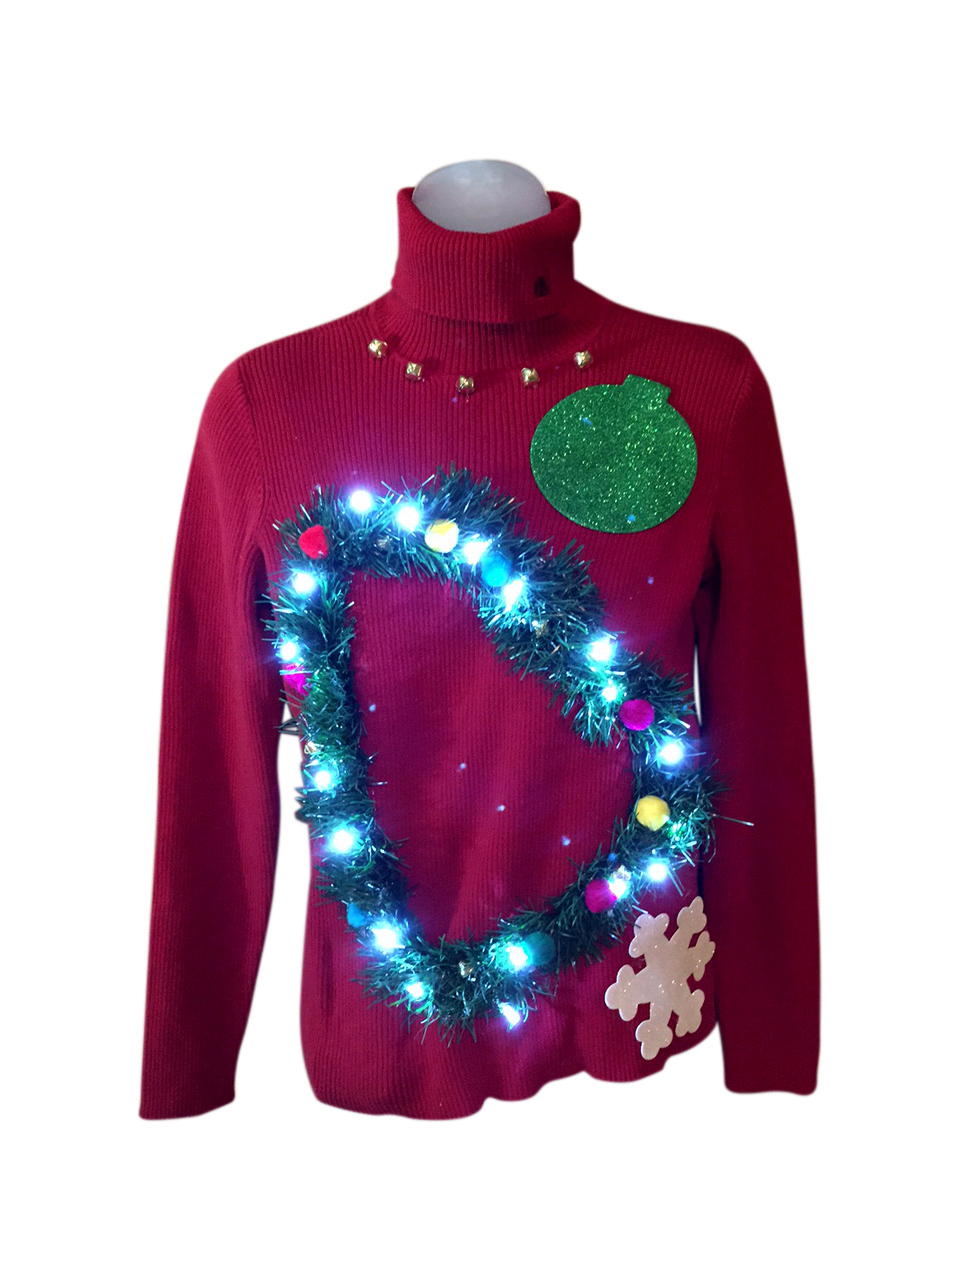 Light Up Christmas Sweater.The Light Before Christmas Turtleneck S M 30 21 Light Up Christmas Sweater